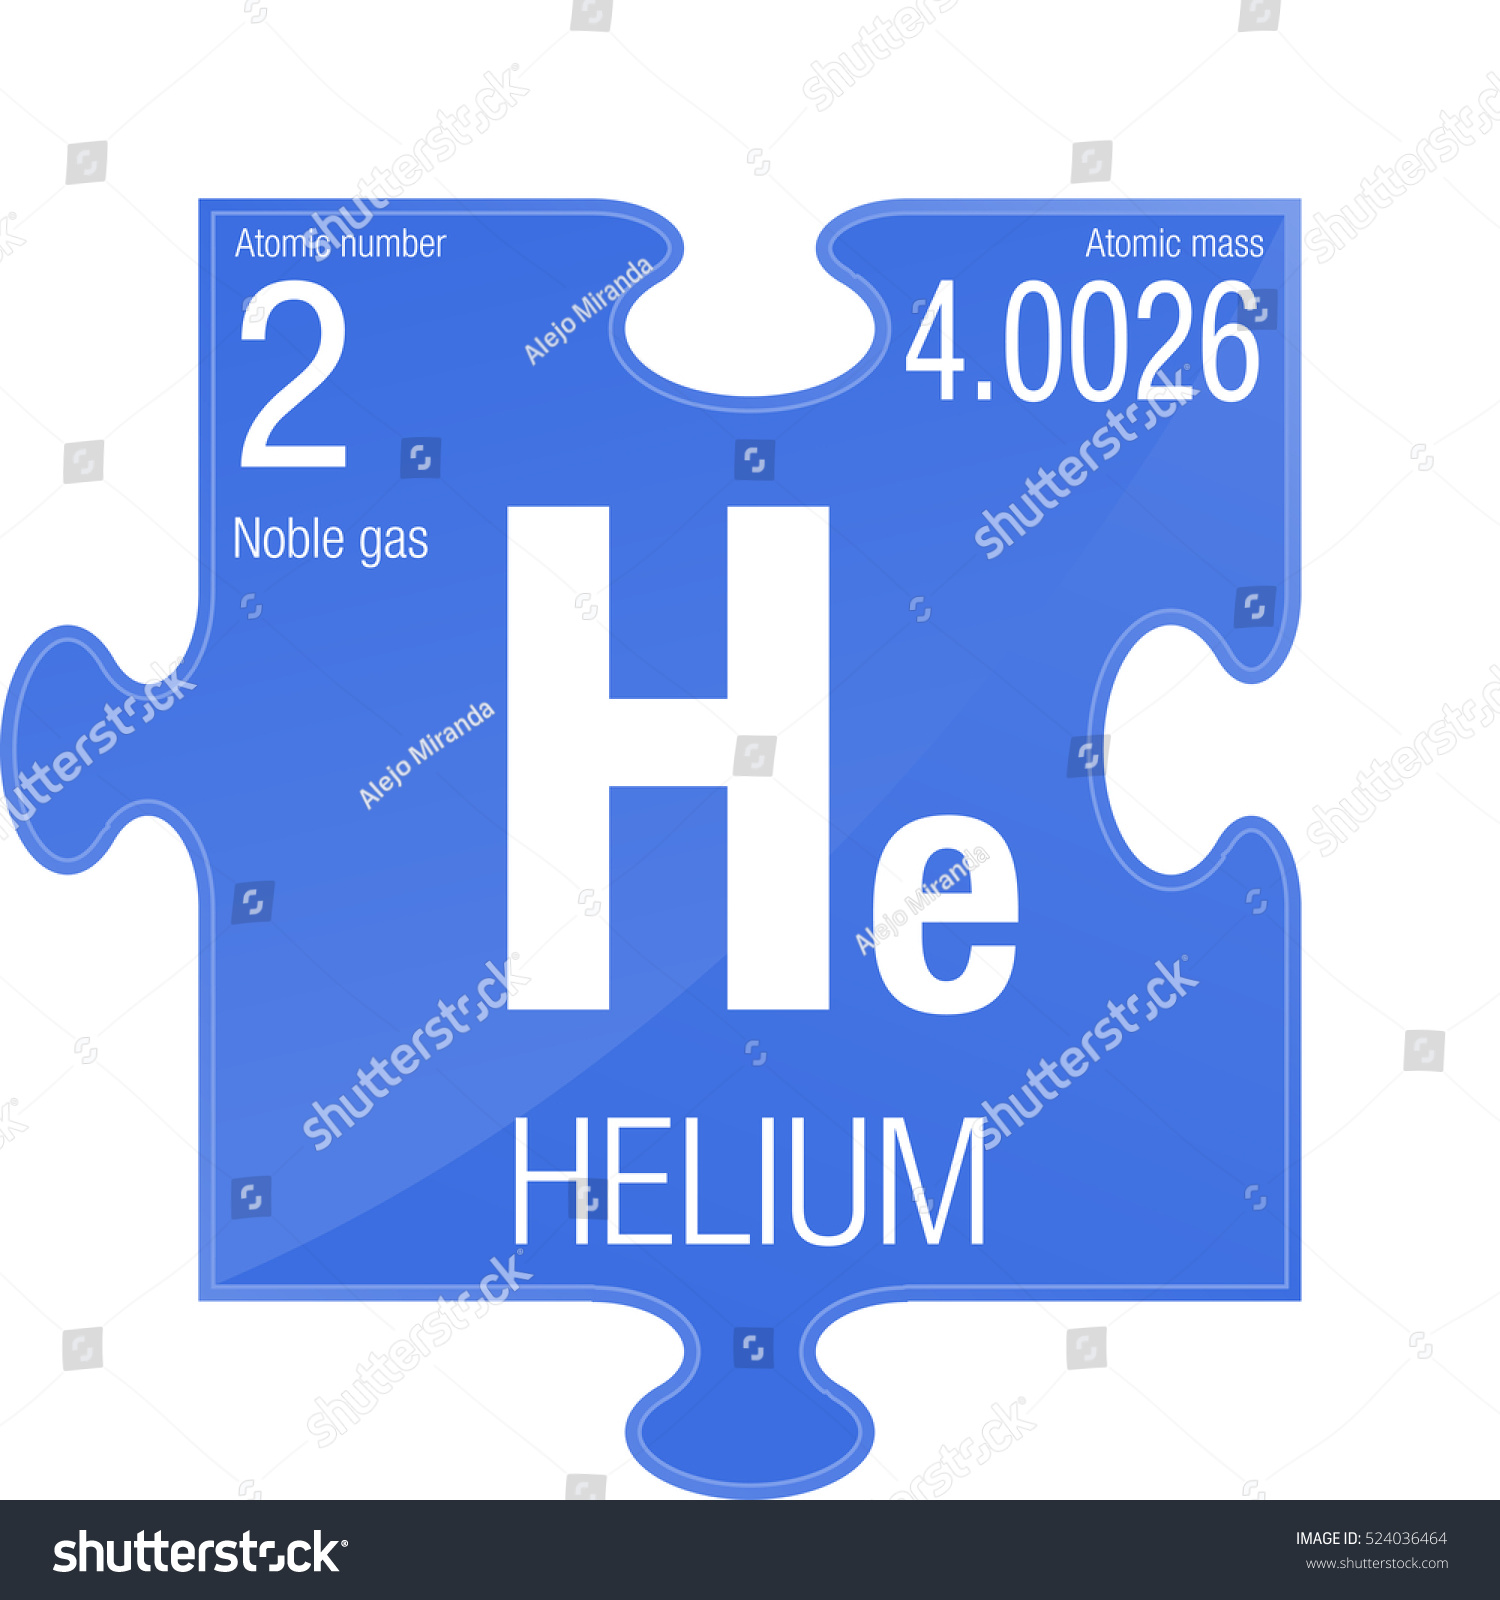 Helium symbol element number 2 periodic stock vector 524036464 helium symbol element number 2 of the periodic table of the elements chemistry buycottarizona